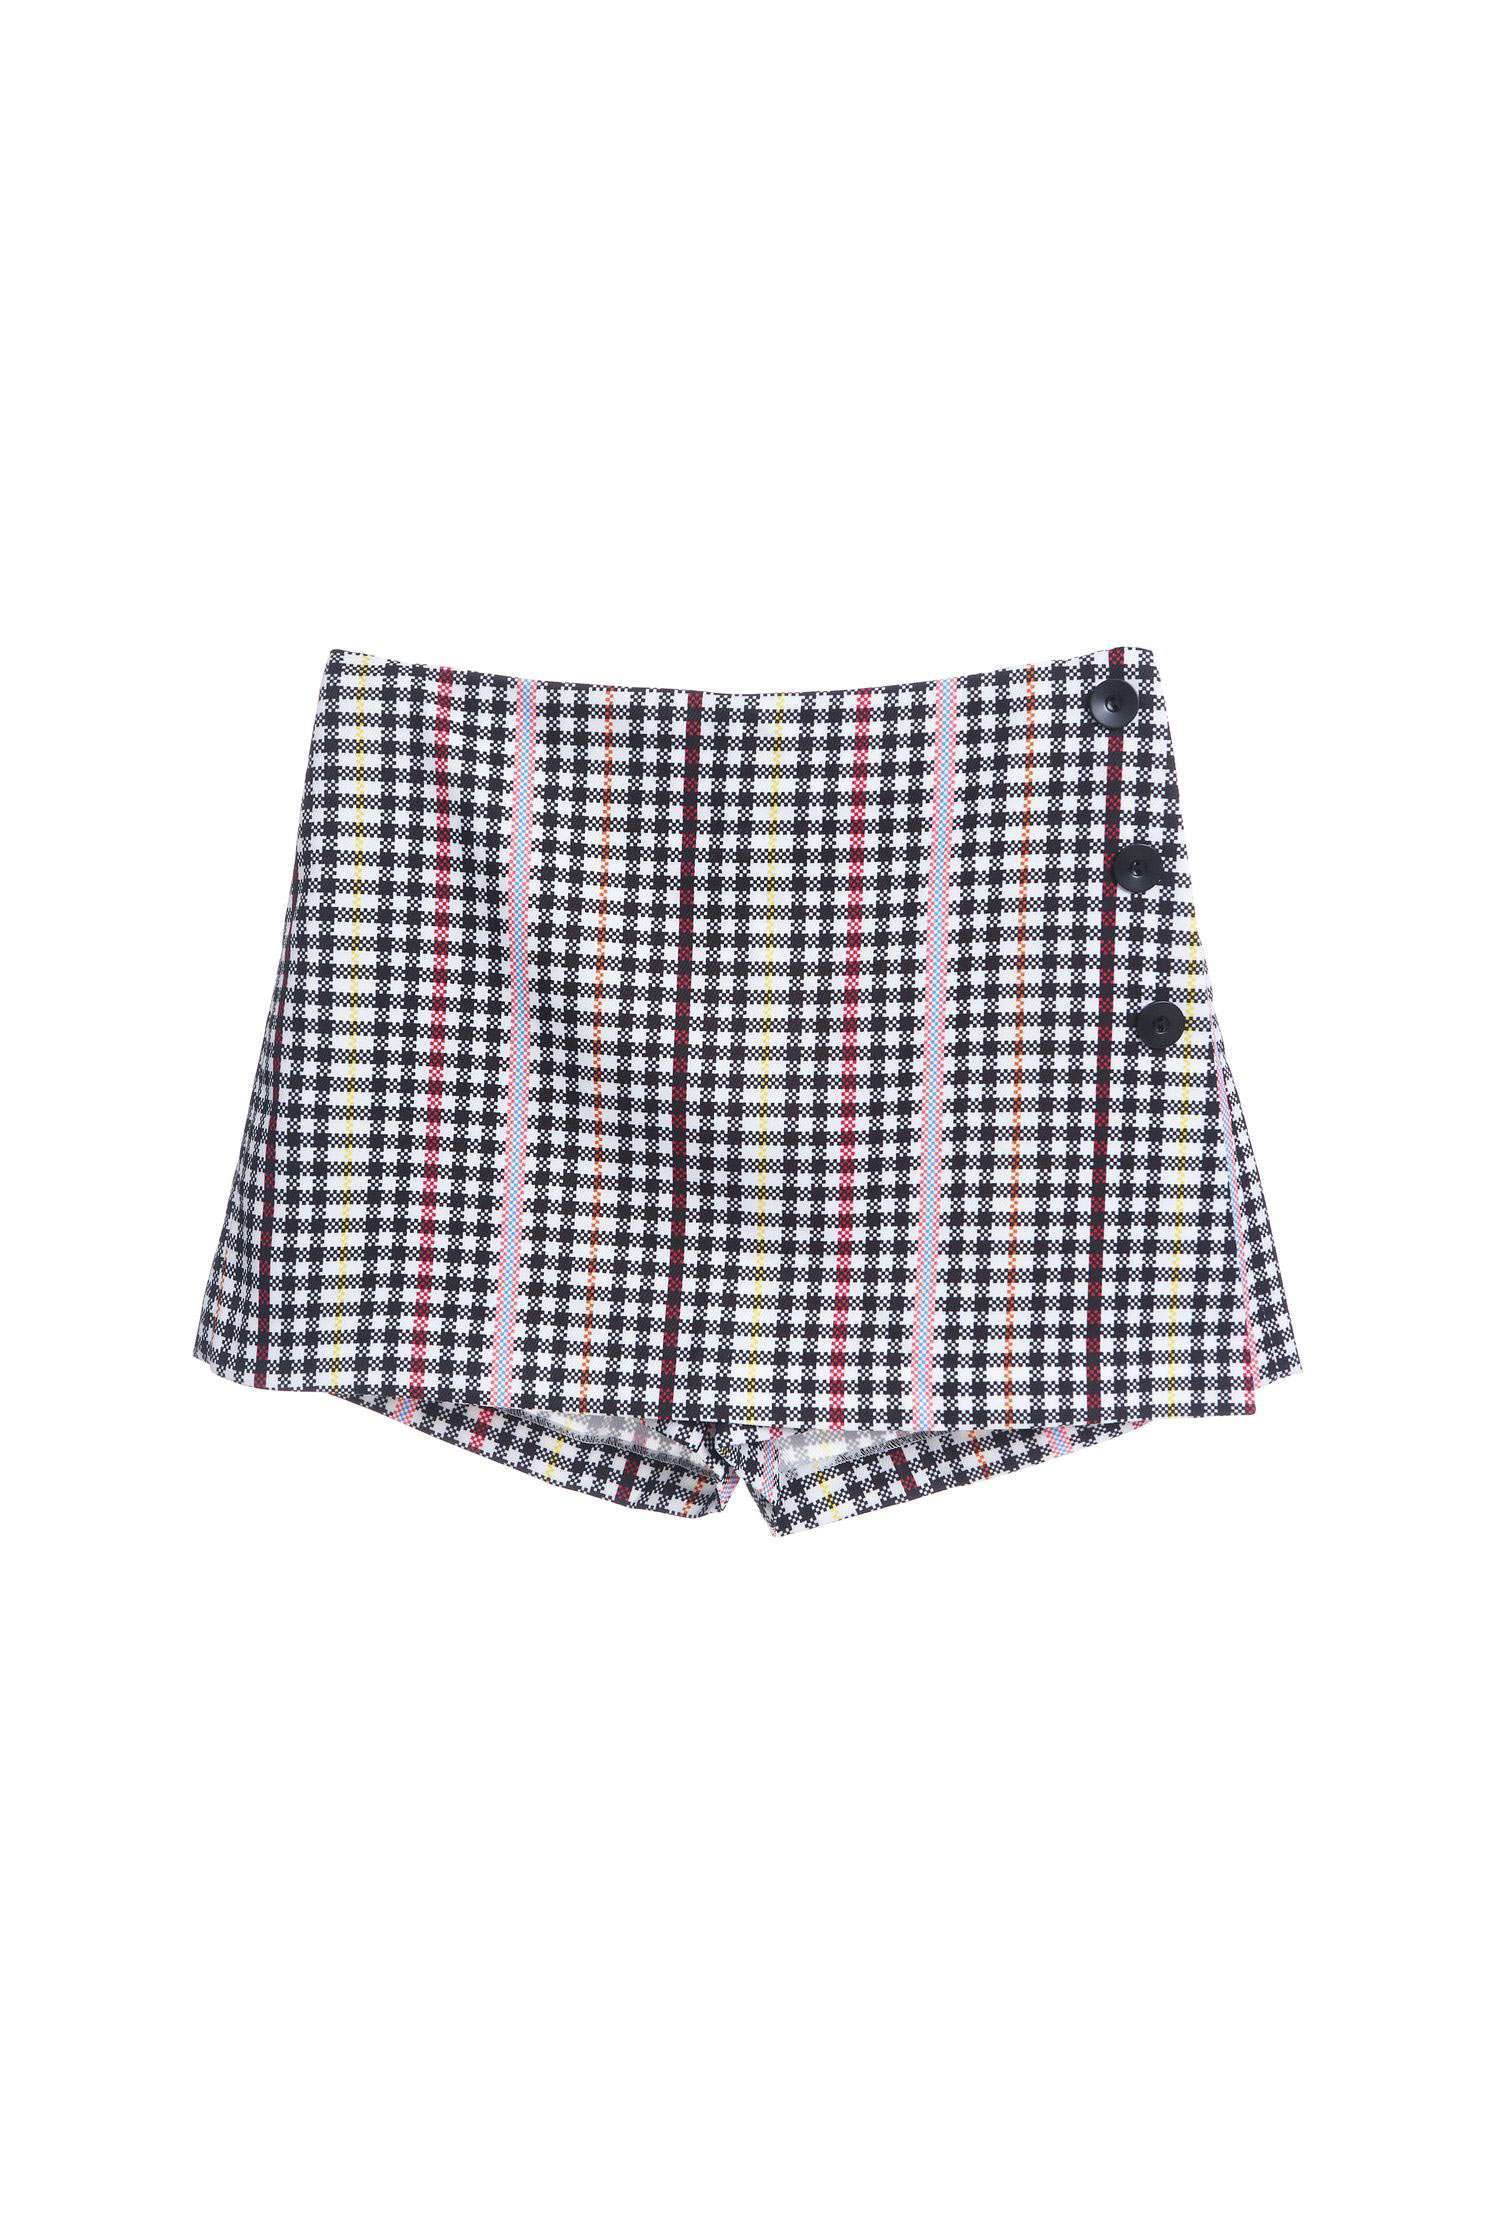 Colorful buckled classic design shorts